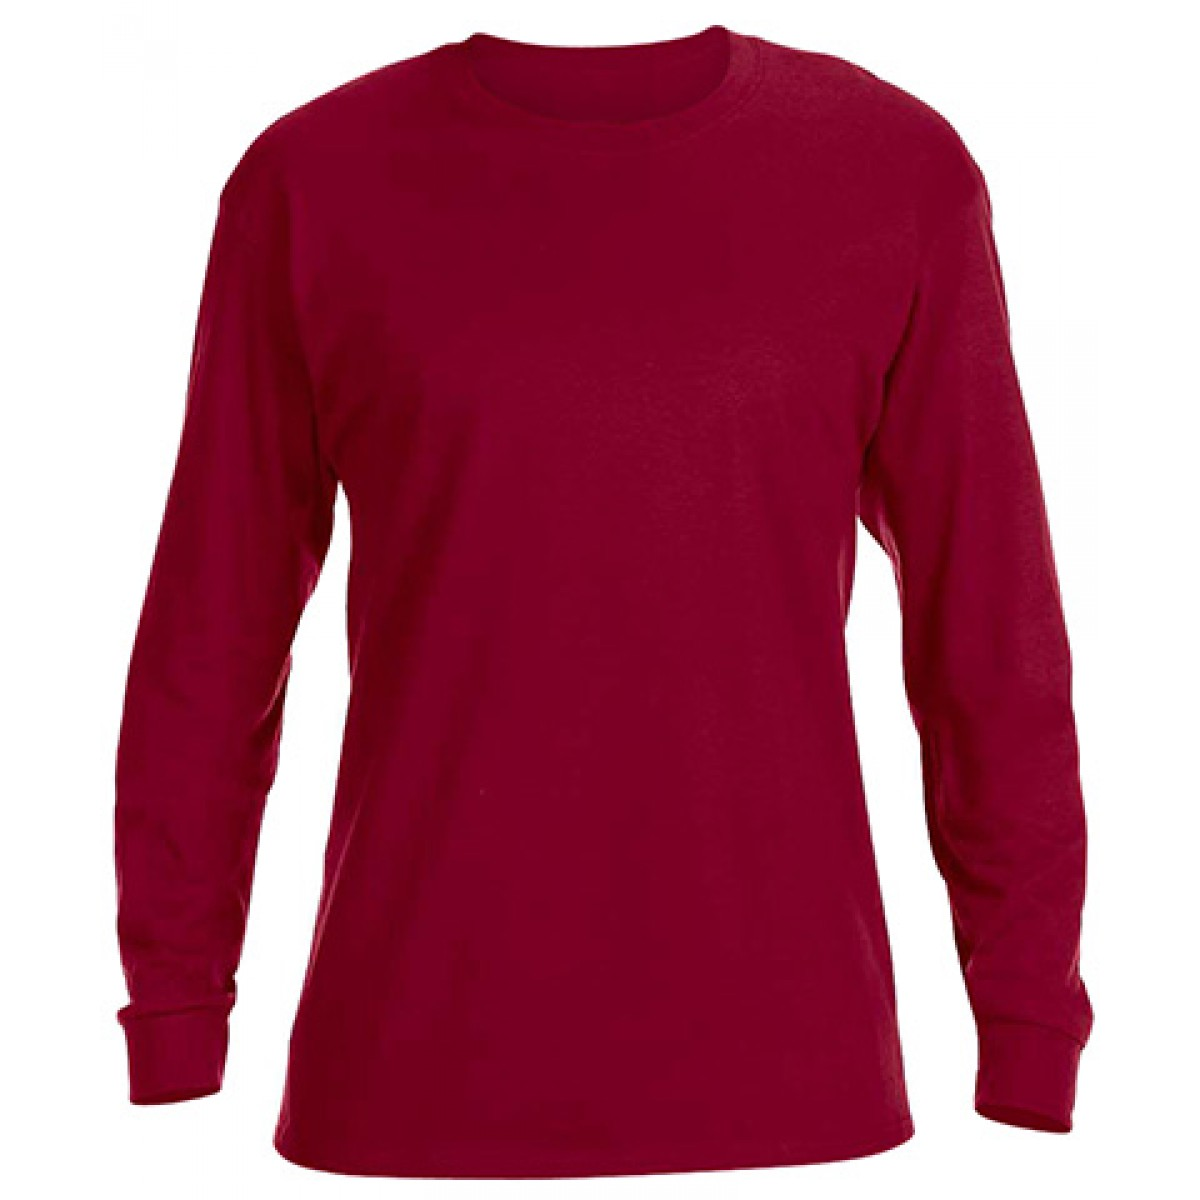 Basic Long Sleeve Crew Neck Cardinal Red